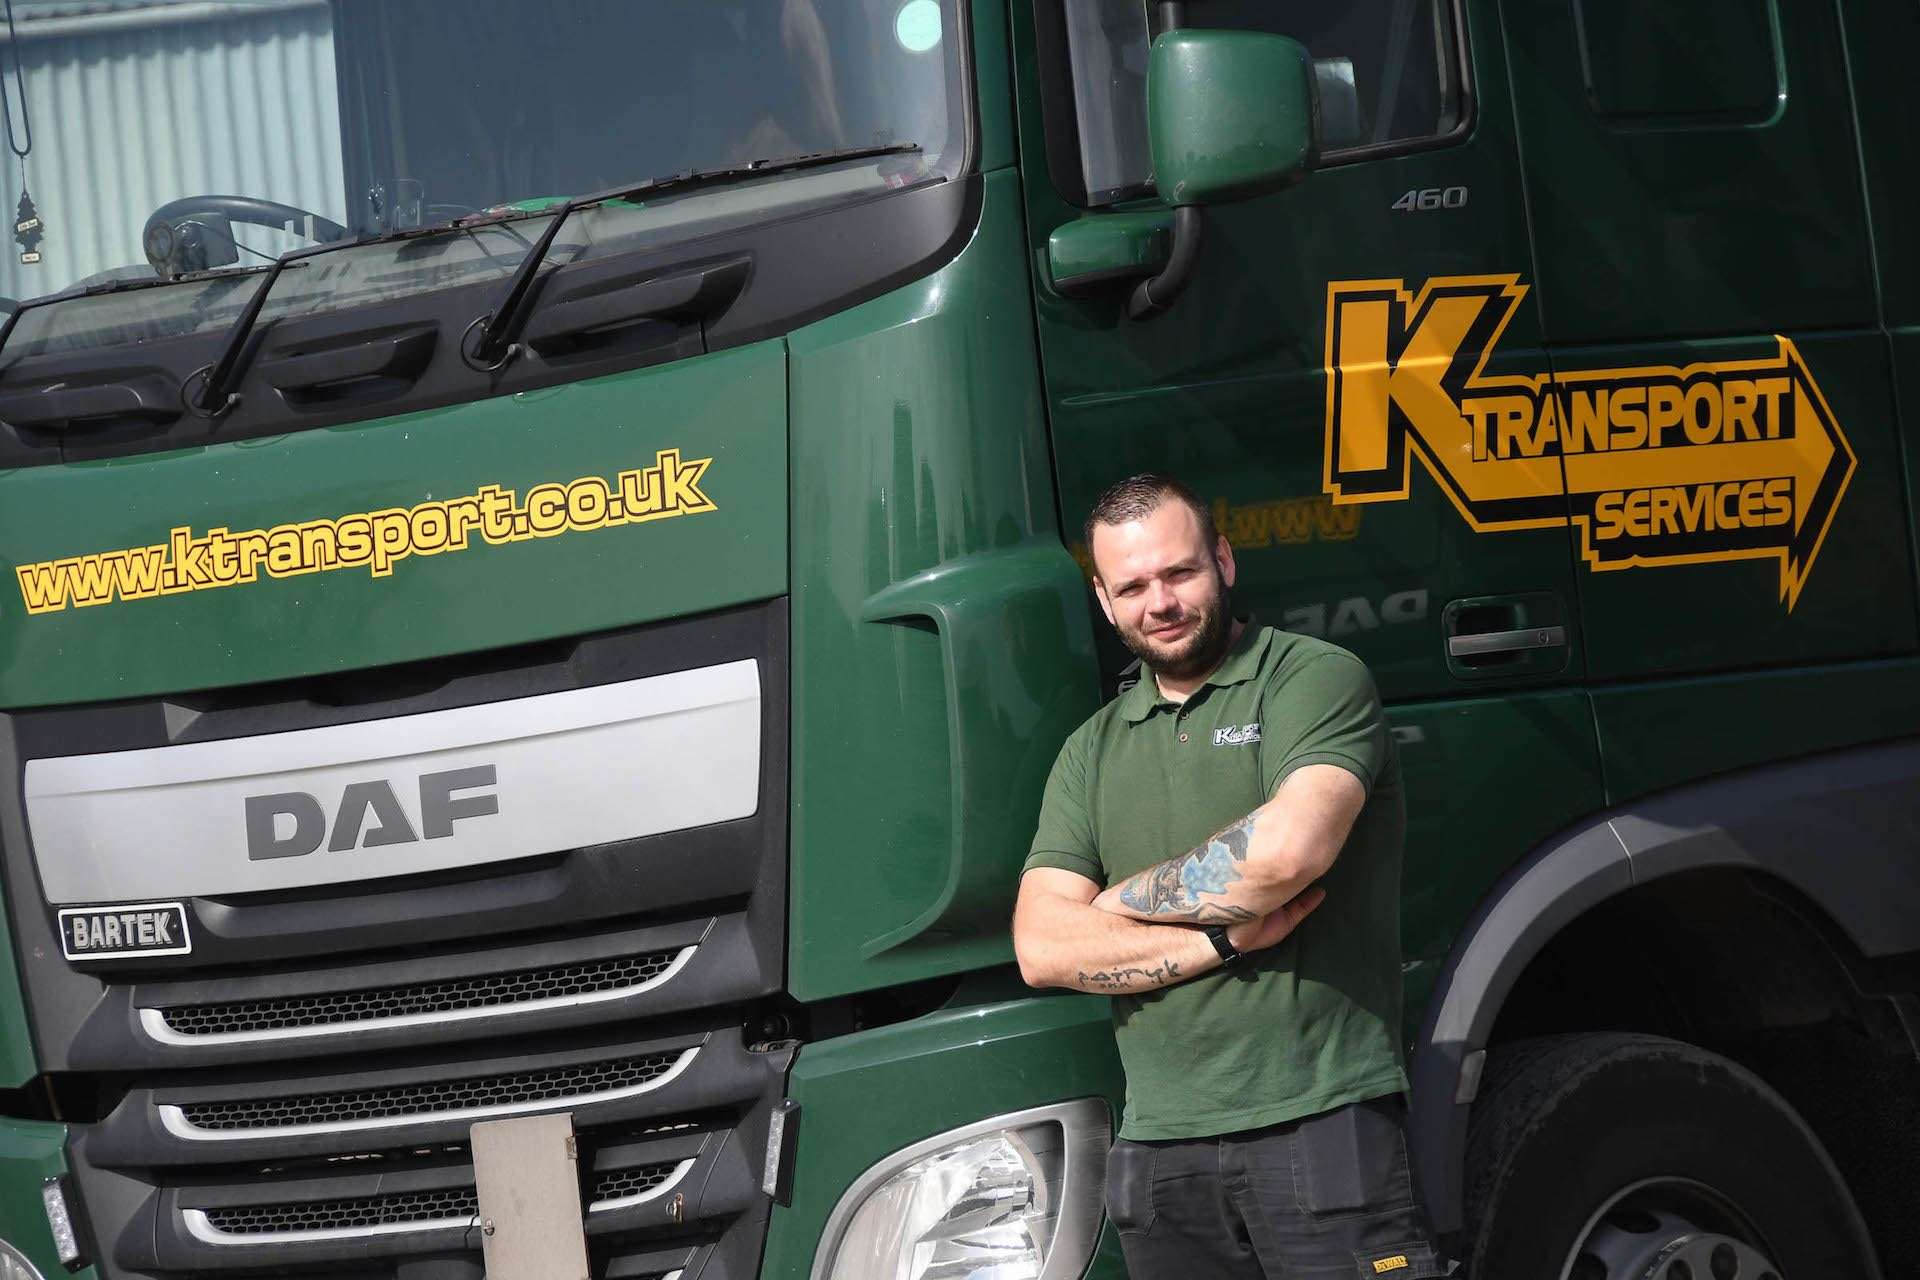 Commercial Vehicle Repairs - K Transport Services